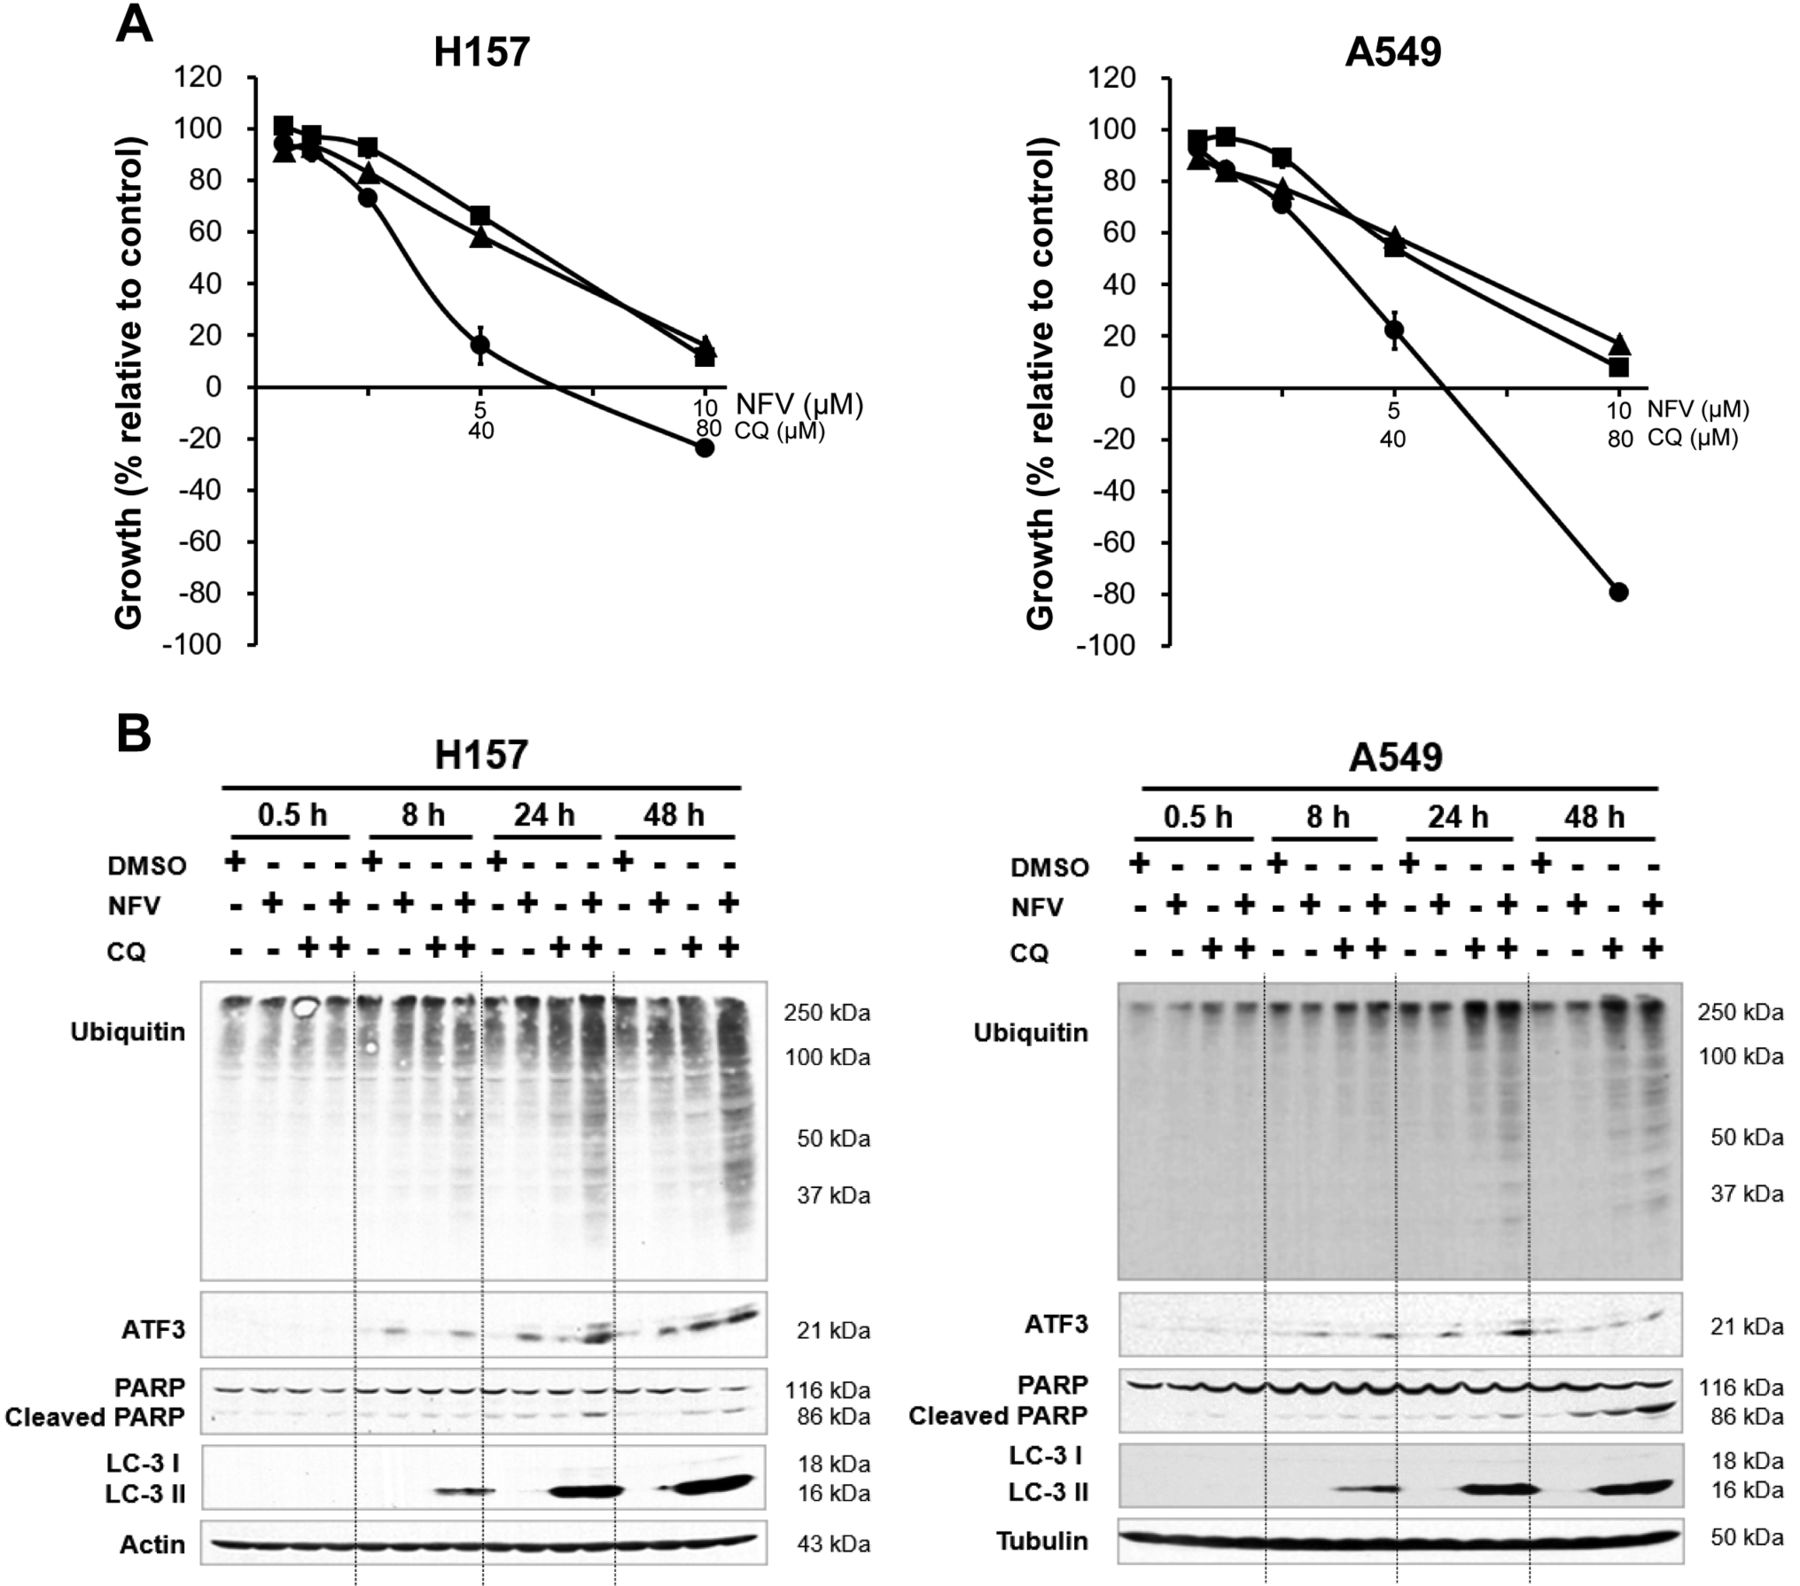 B5, a thioredoxin reductase inhibitor, induces apoptosis